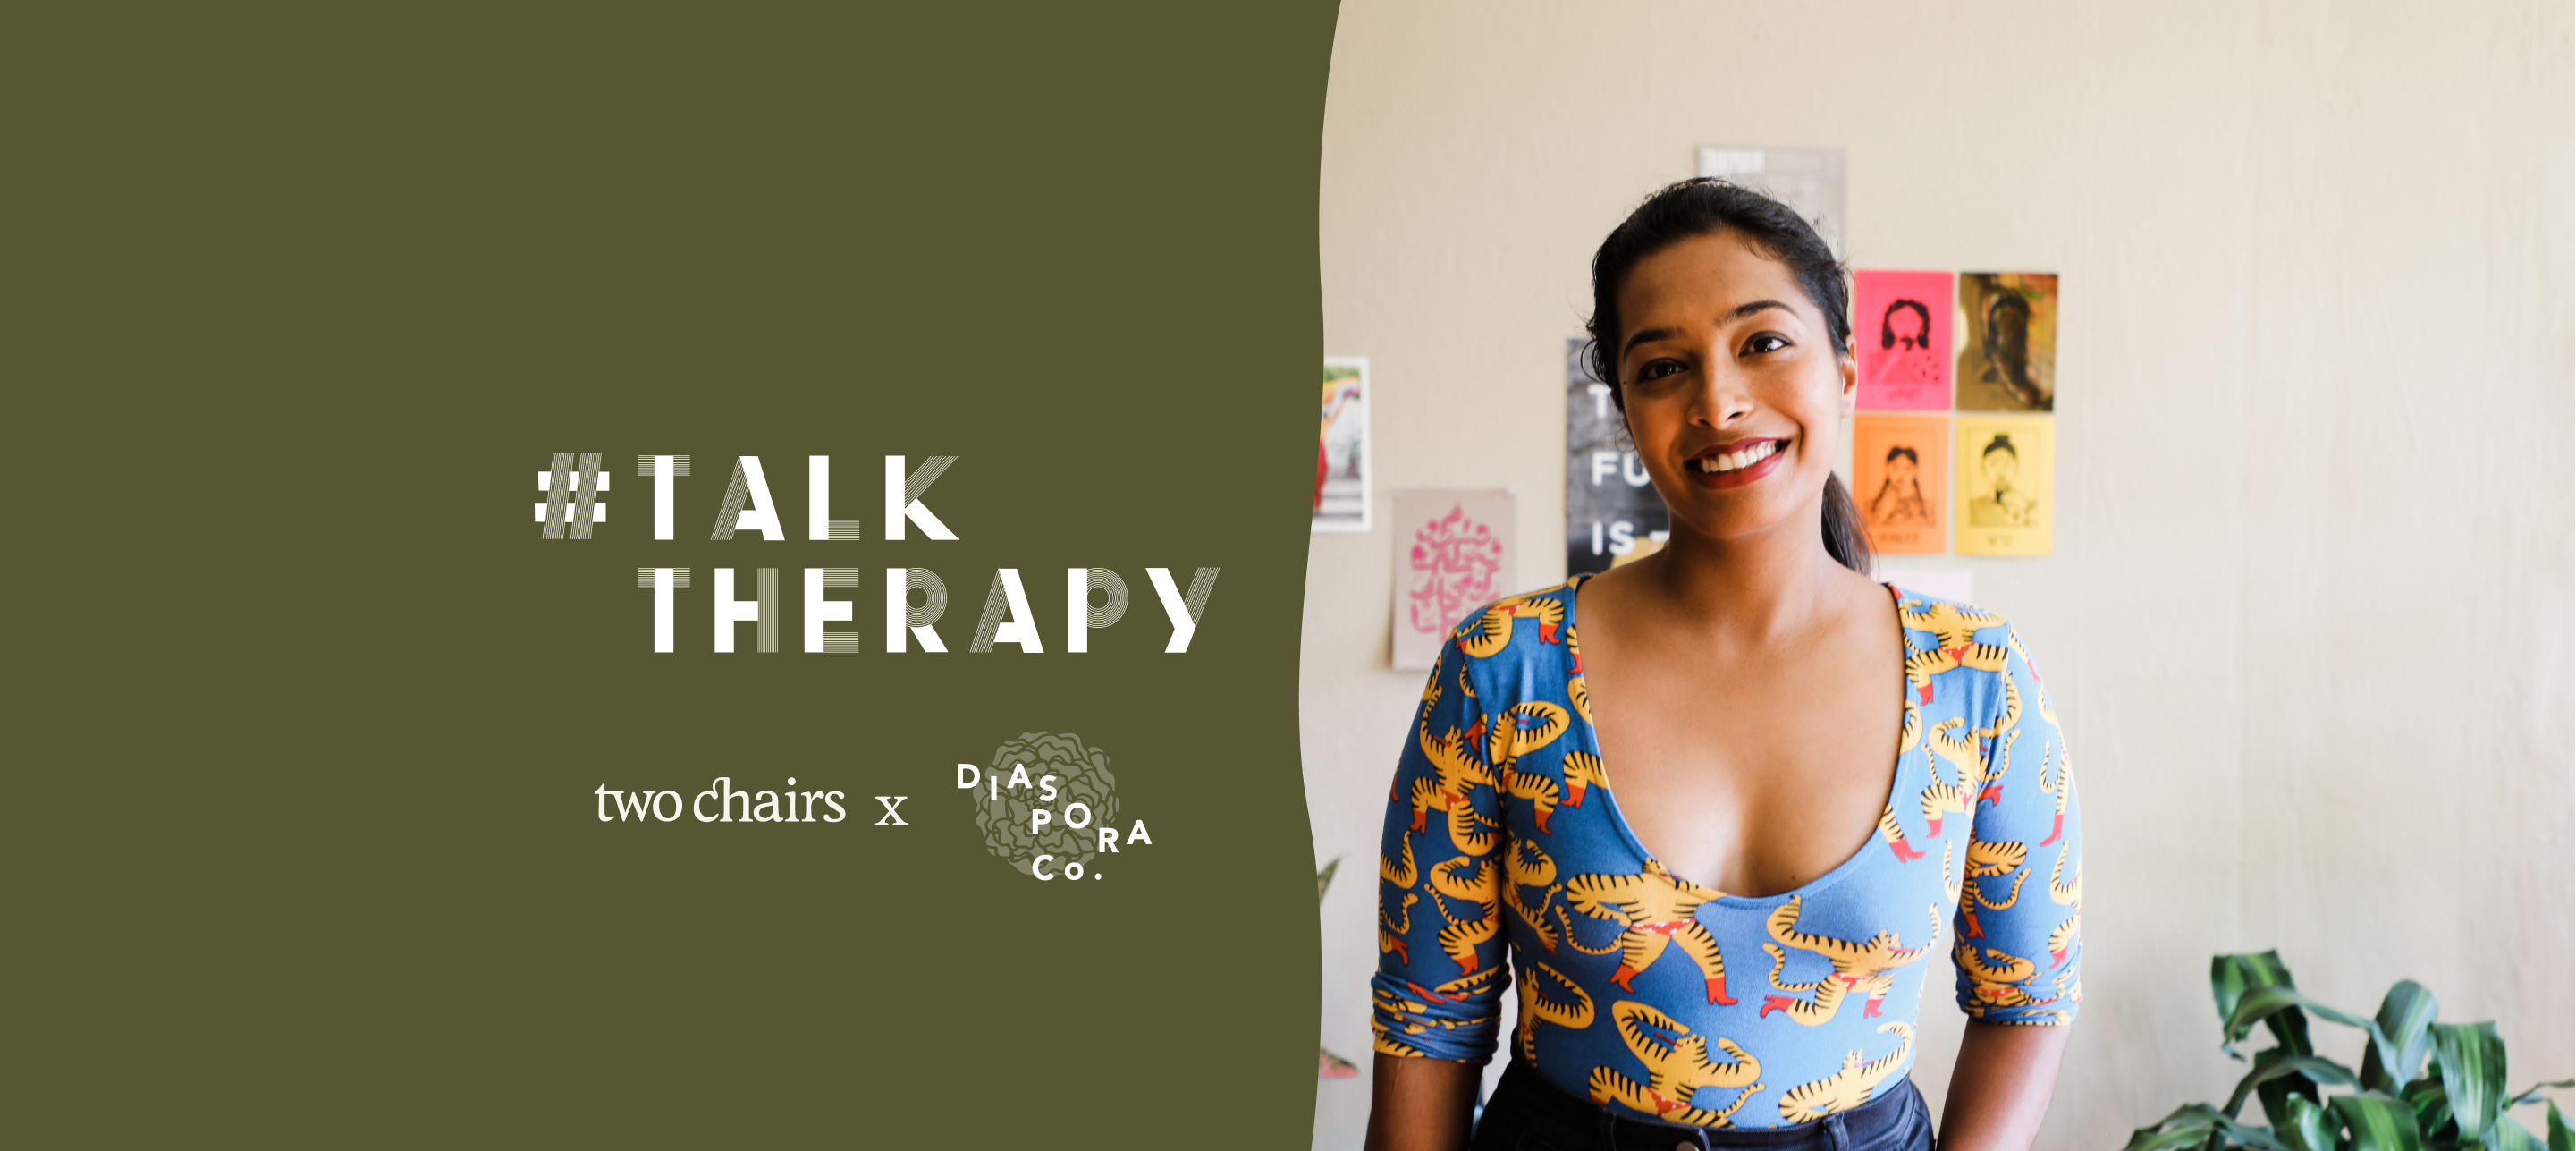 #TalkTherapy with Sana Javeri Kadri, Founder of Diaspora Co.